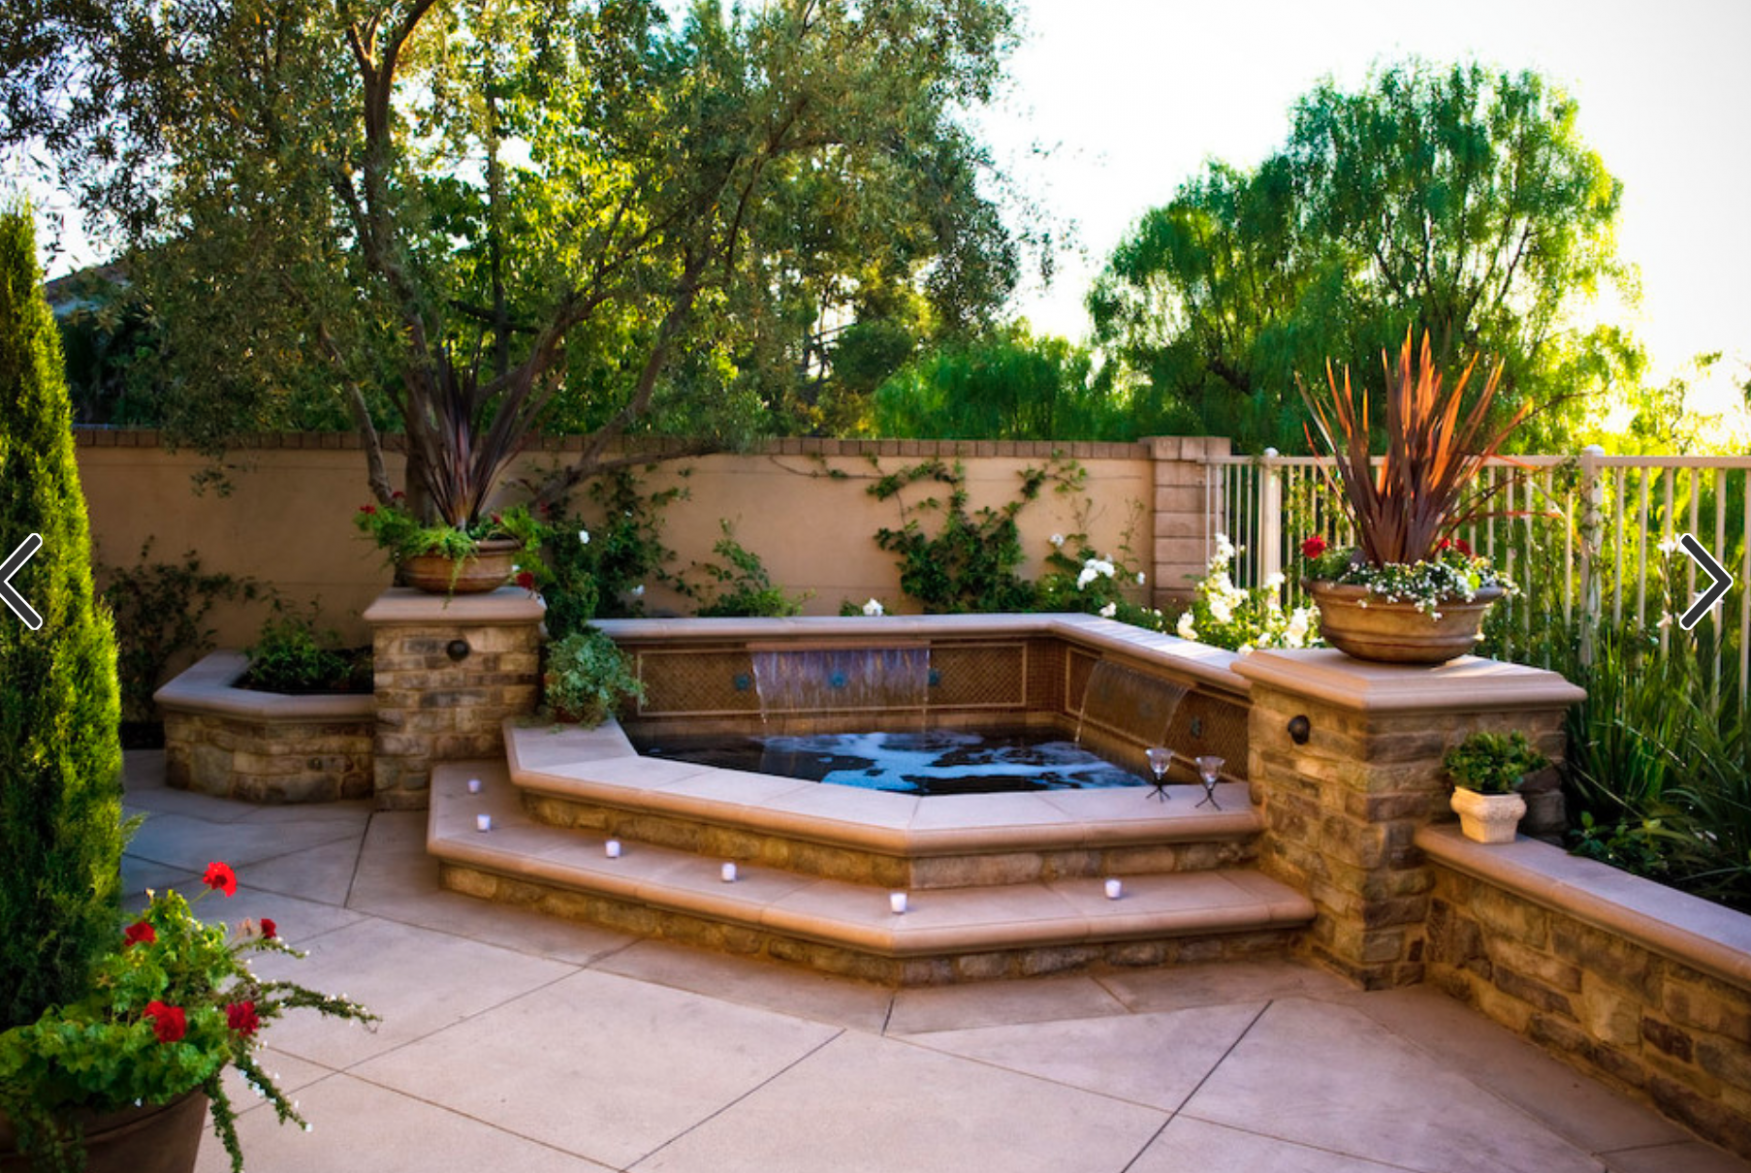 Backyard 'spool' hot tub/pool for downward slope in backyard ...